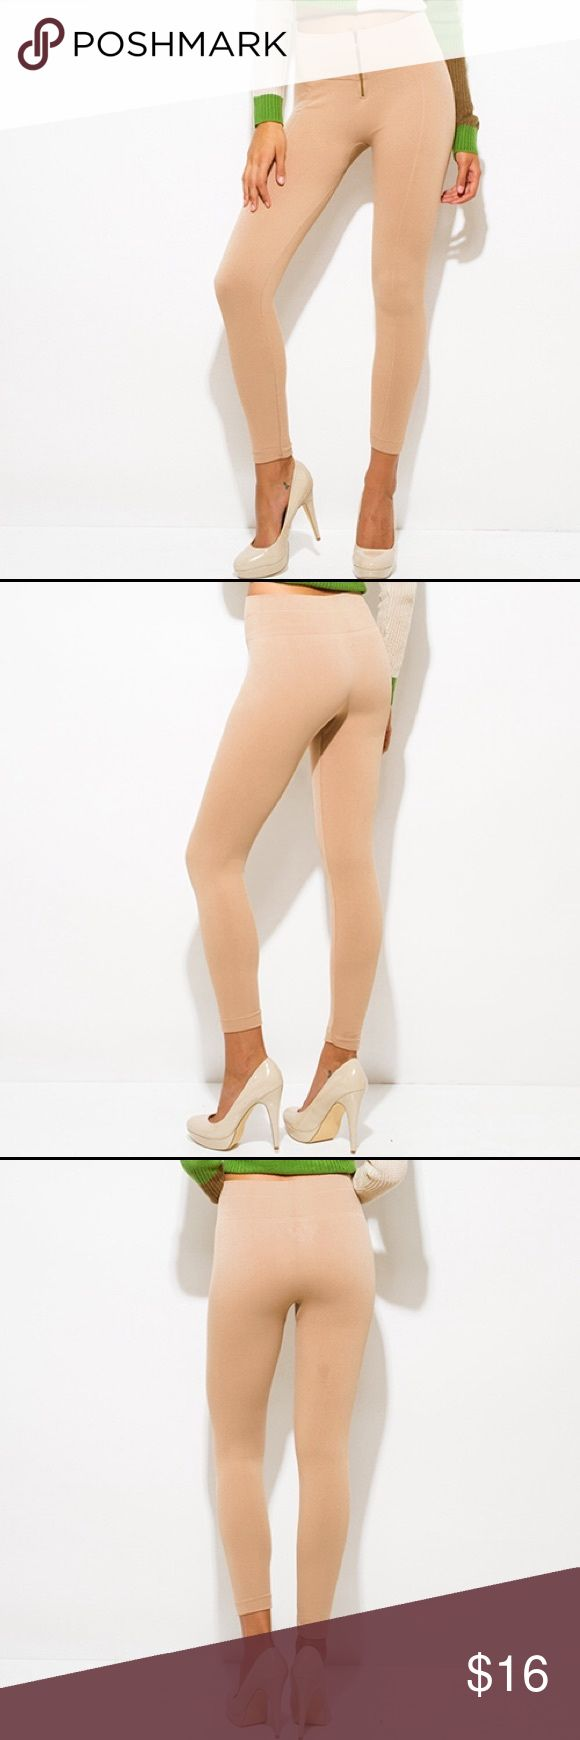 Beige Leggings Beige Fleece Lined Golden Zipper High Waist Leggings Pants Leggings